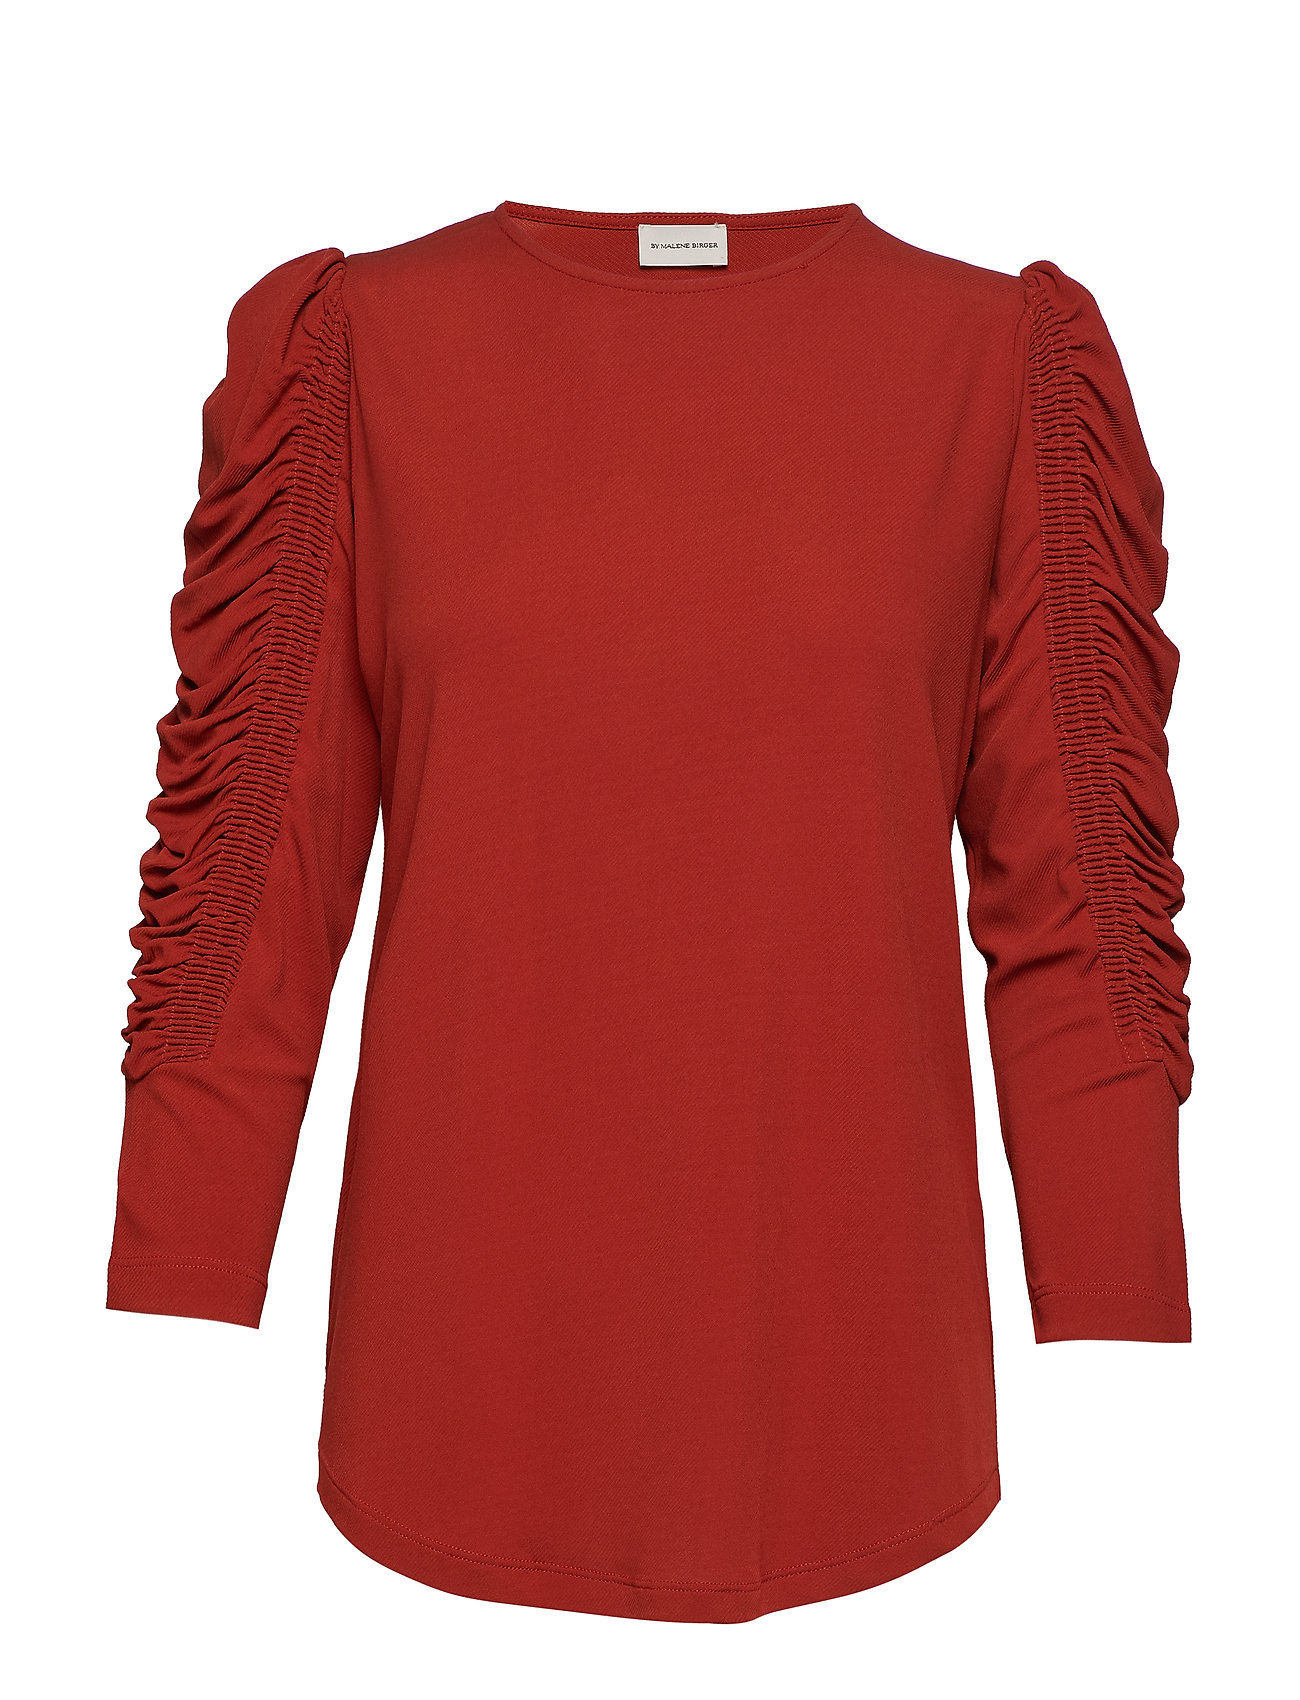 Tsh5016s91red Birger ClayBy Malene ClayBy ClayBy Birger Tsh5016s91red Malene Malene ClayBy Birger Tsh5016s91red Tsh5016s91red kPiZuOX